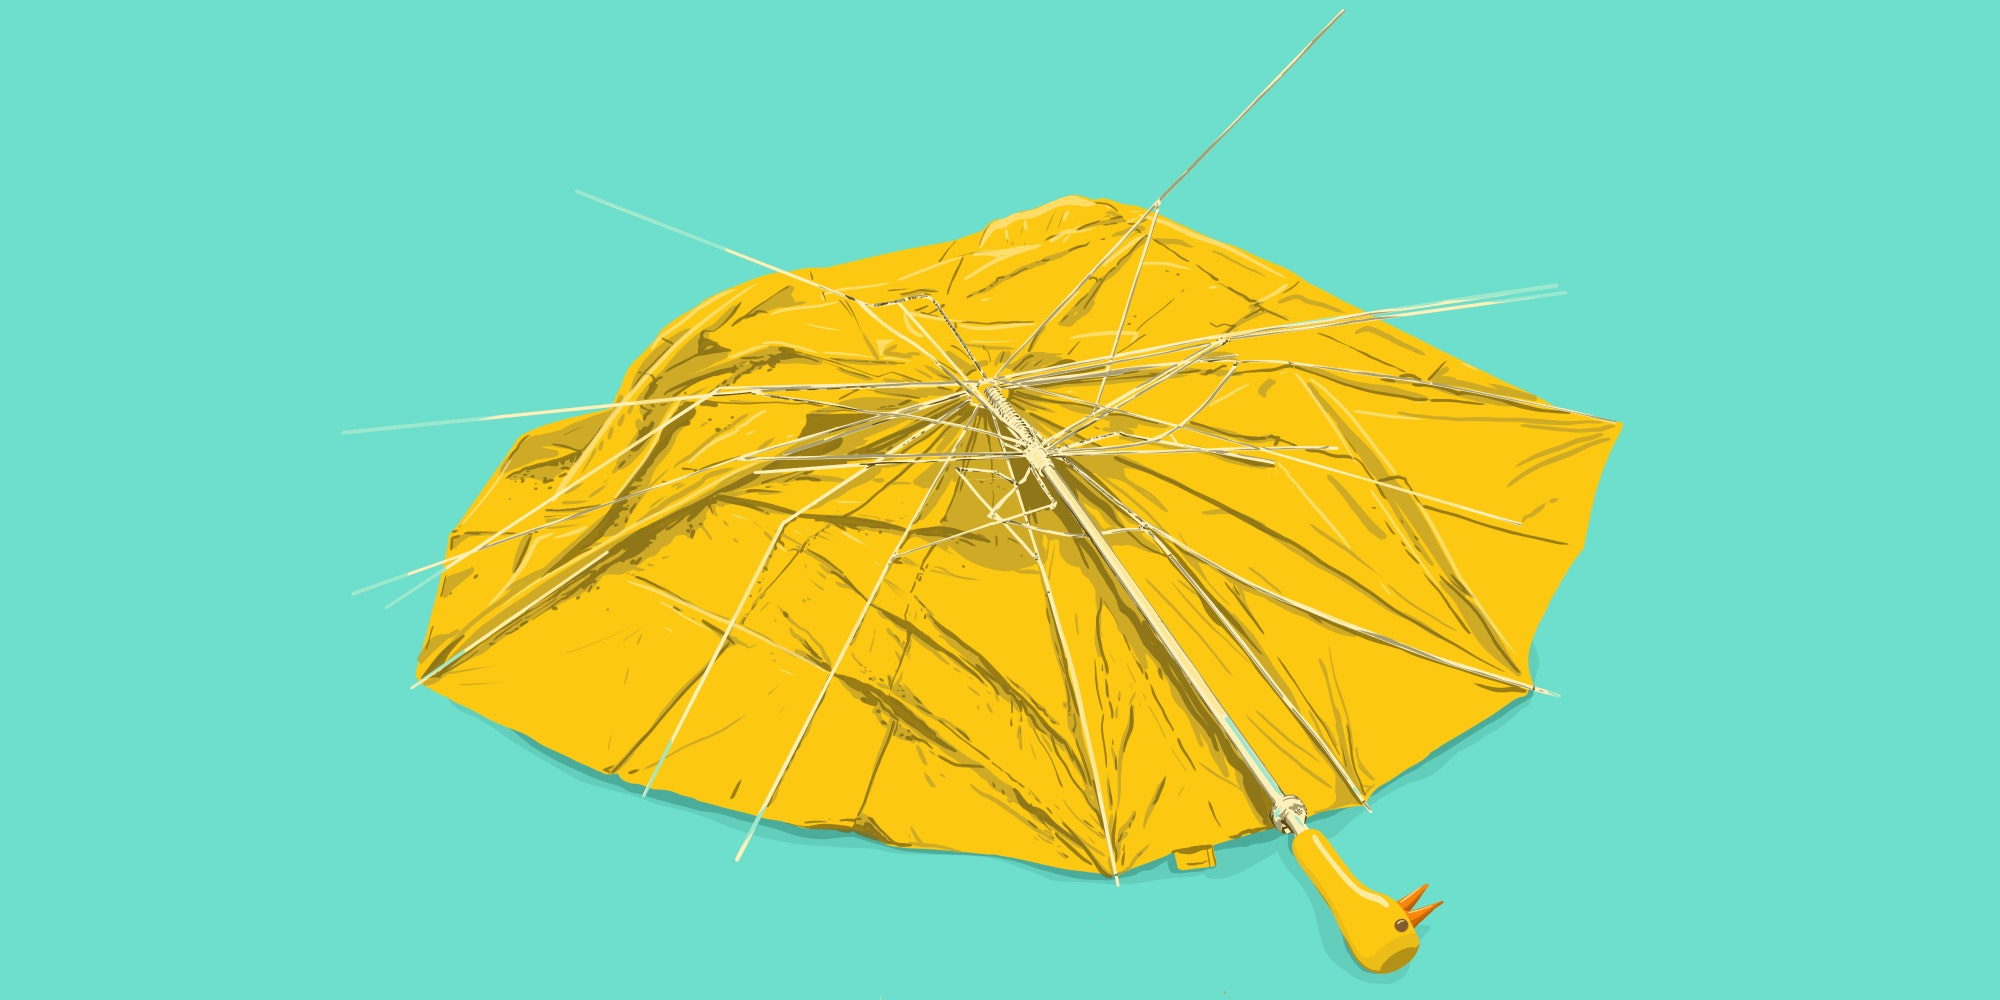 Broken umbrella in the rain